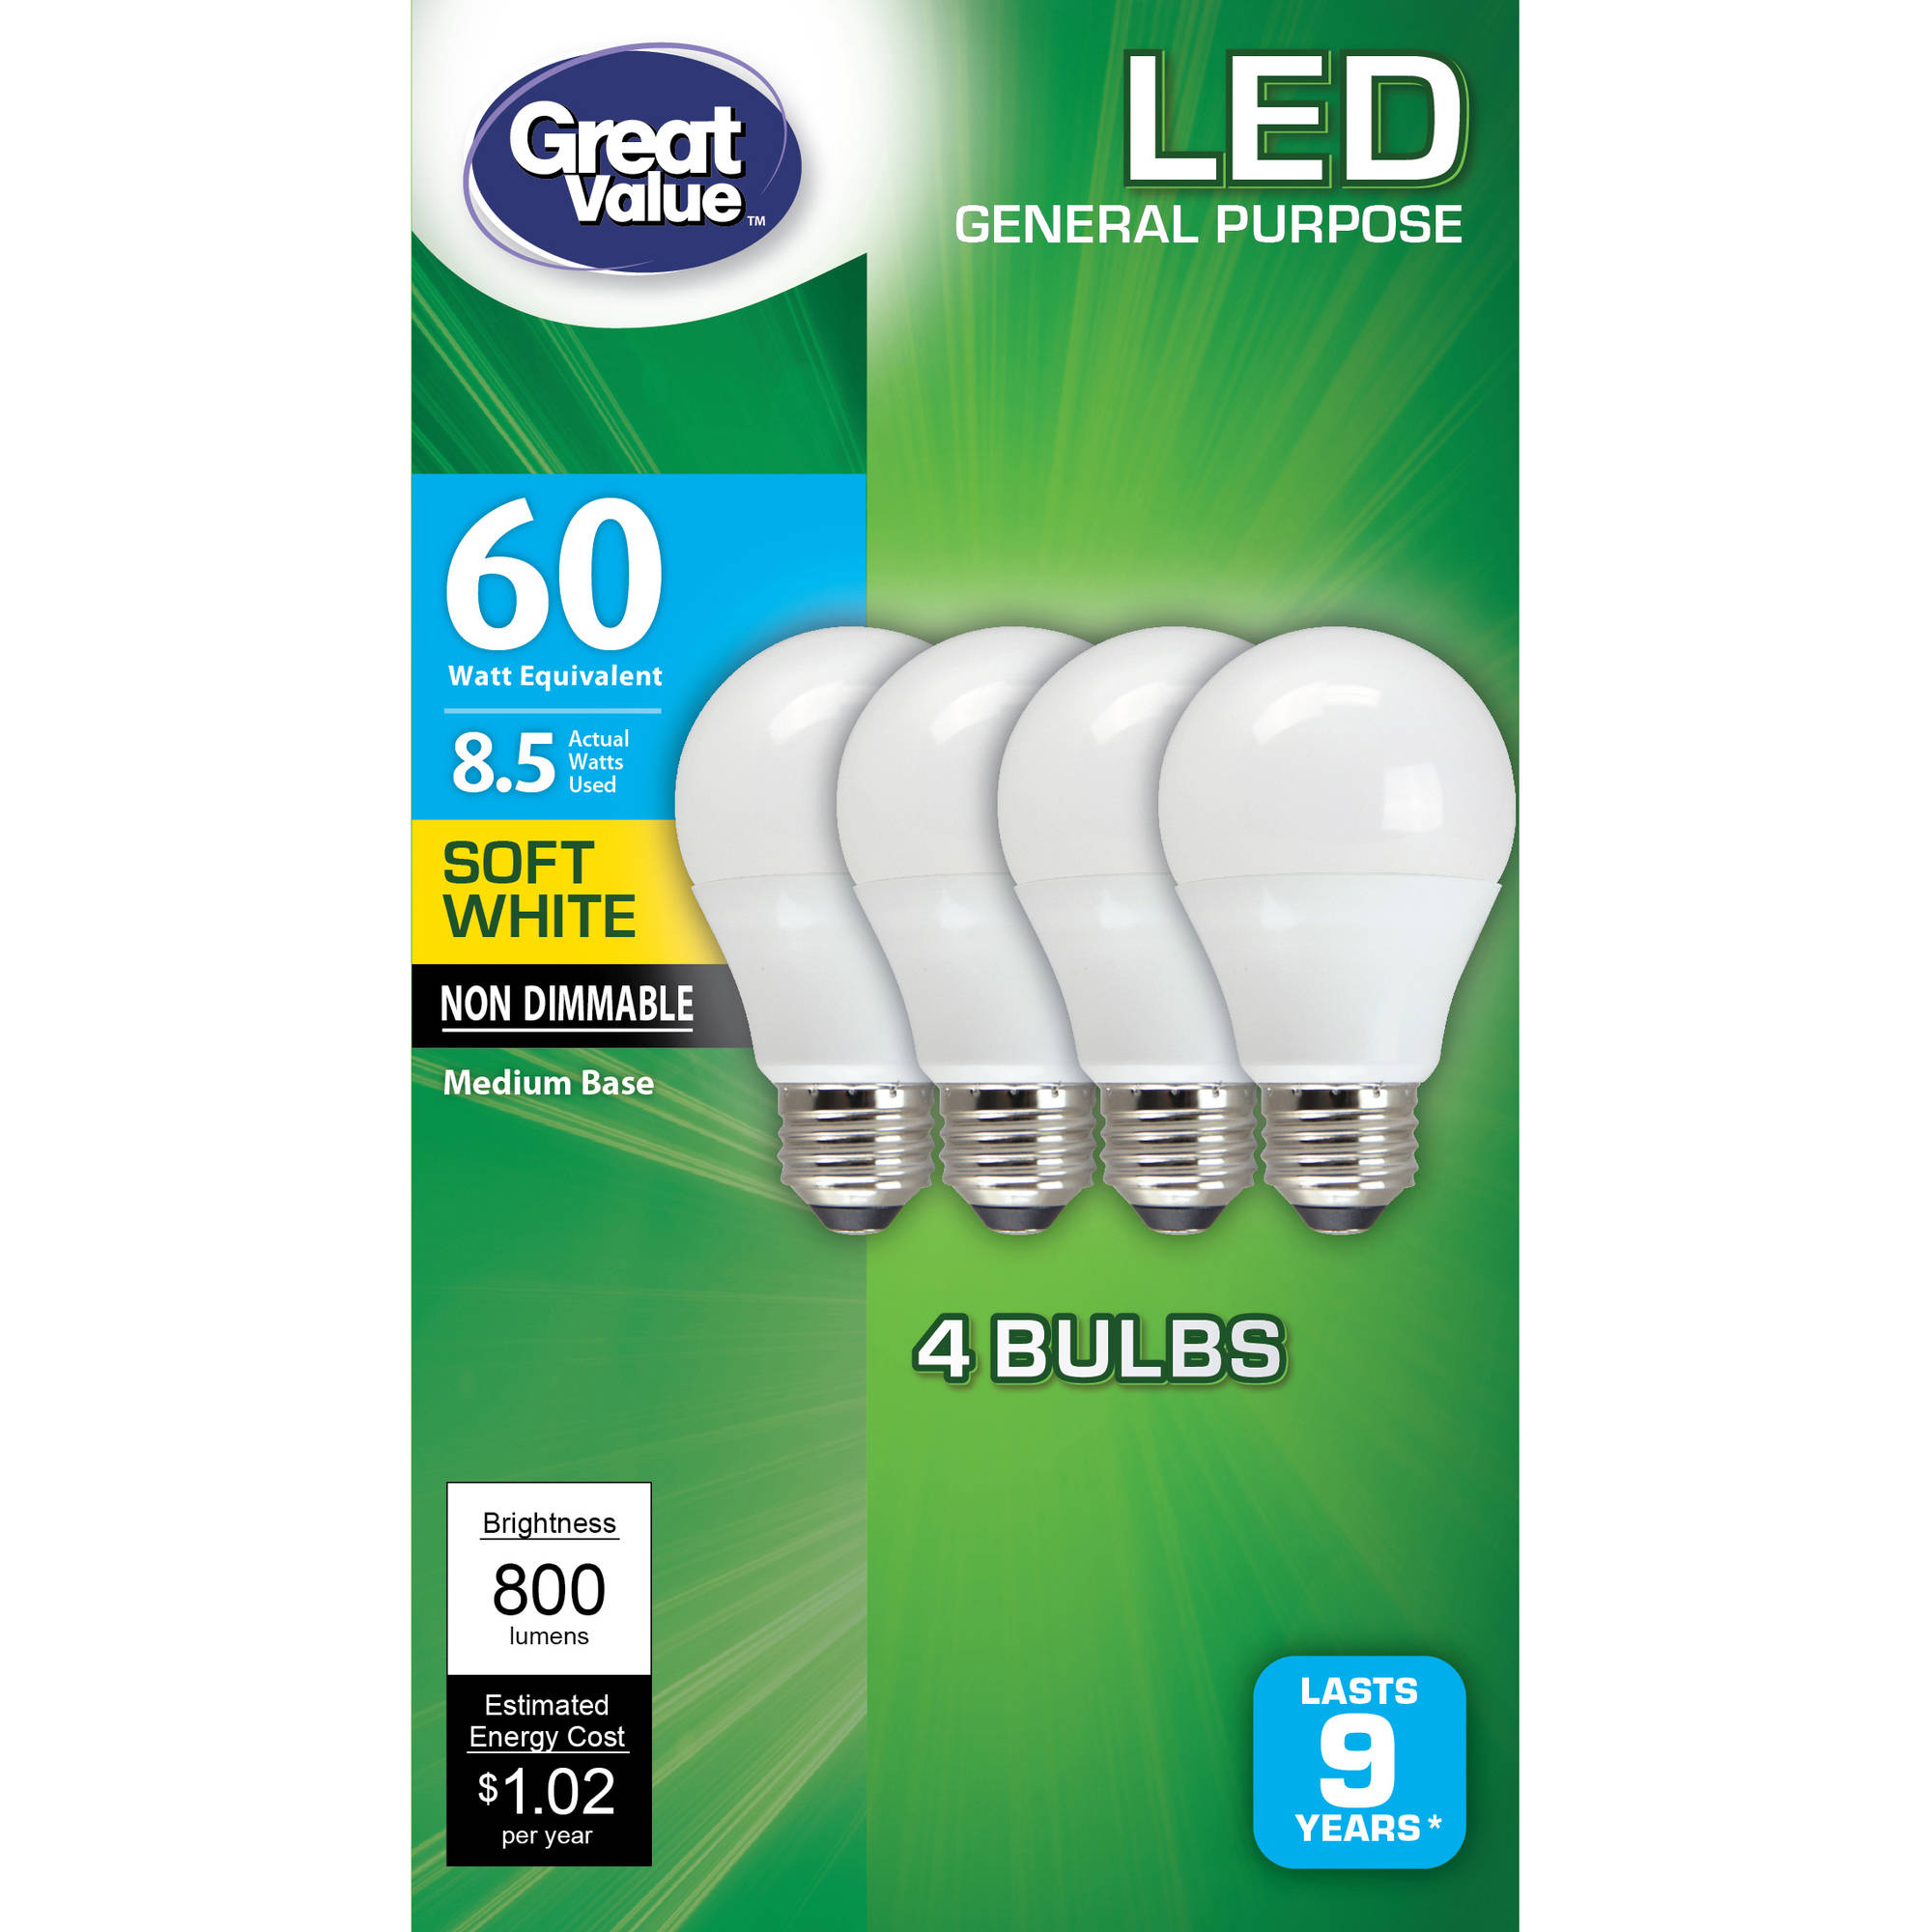 Great Value LED Light Bulbs 8.5W (60W Equivalent), Soft White, 4-Pack